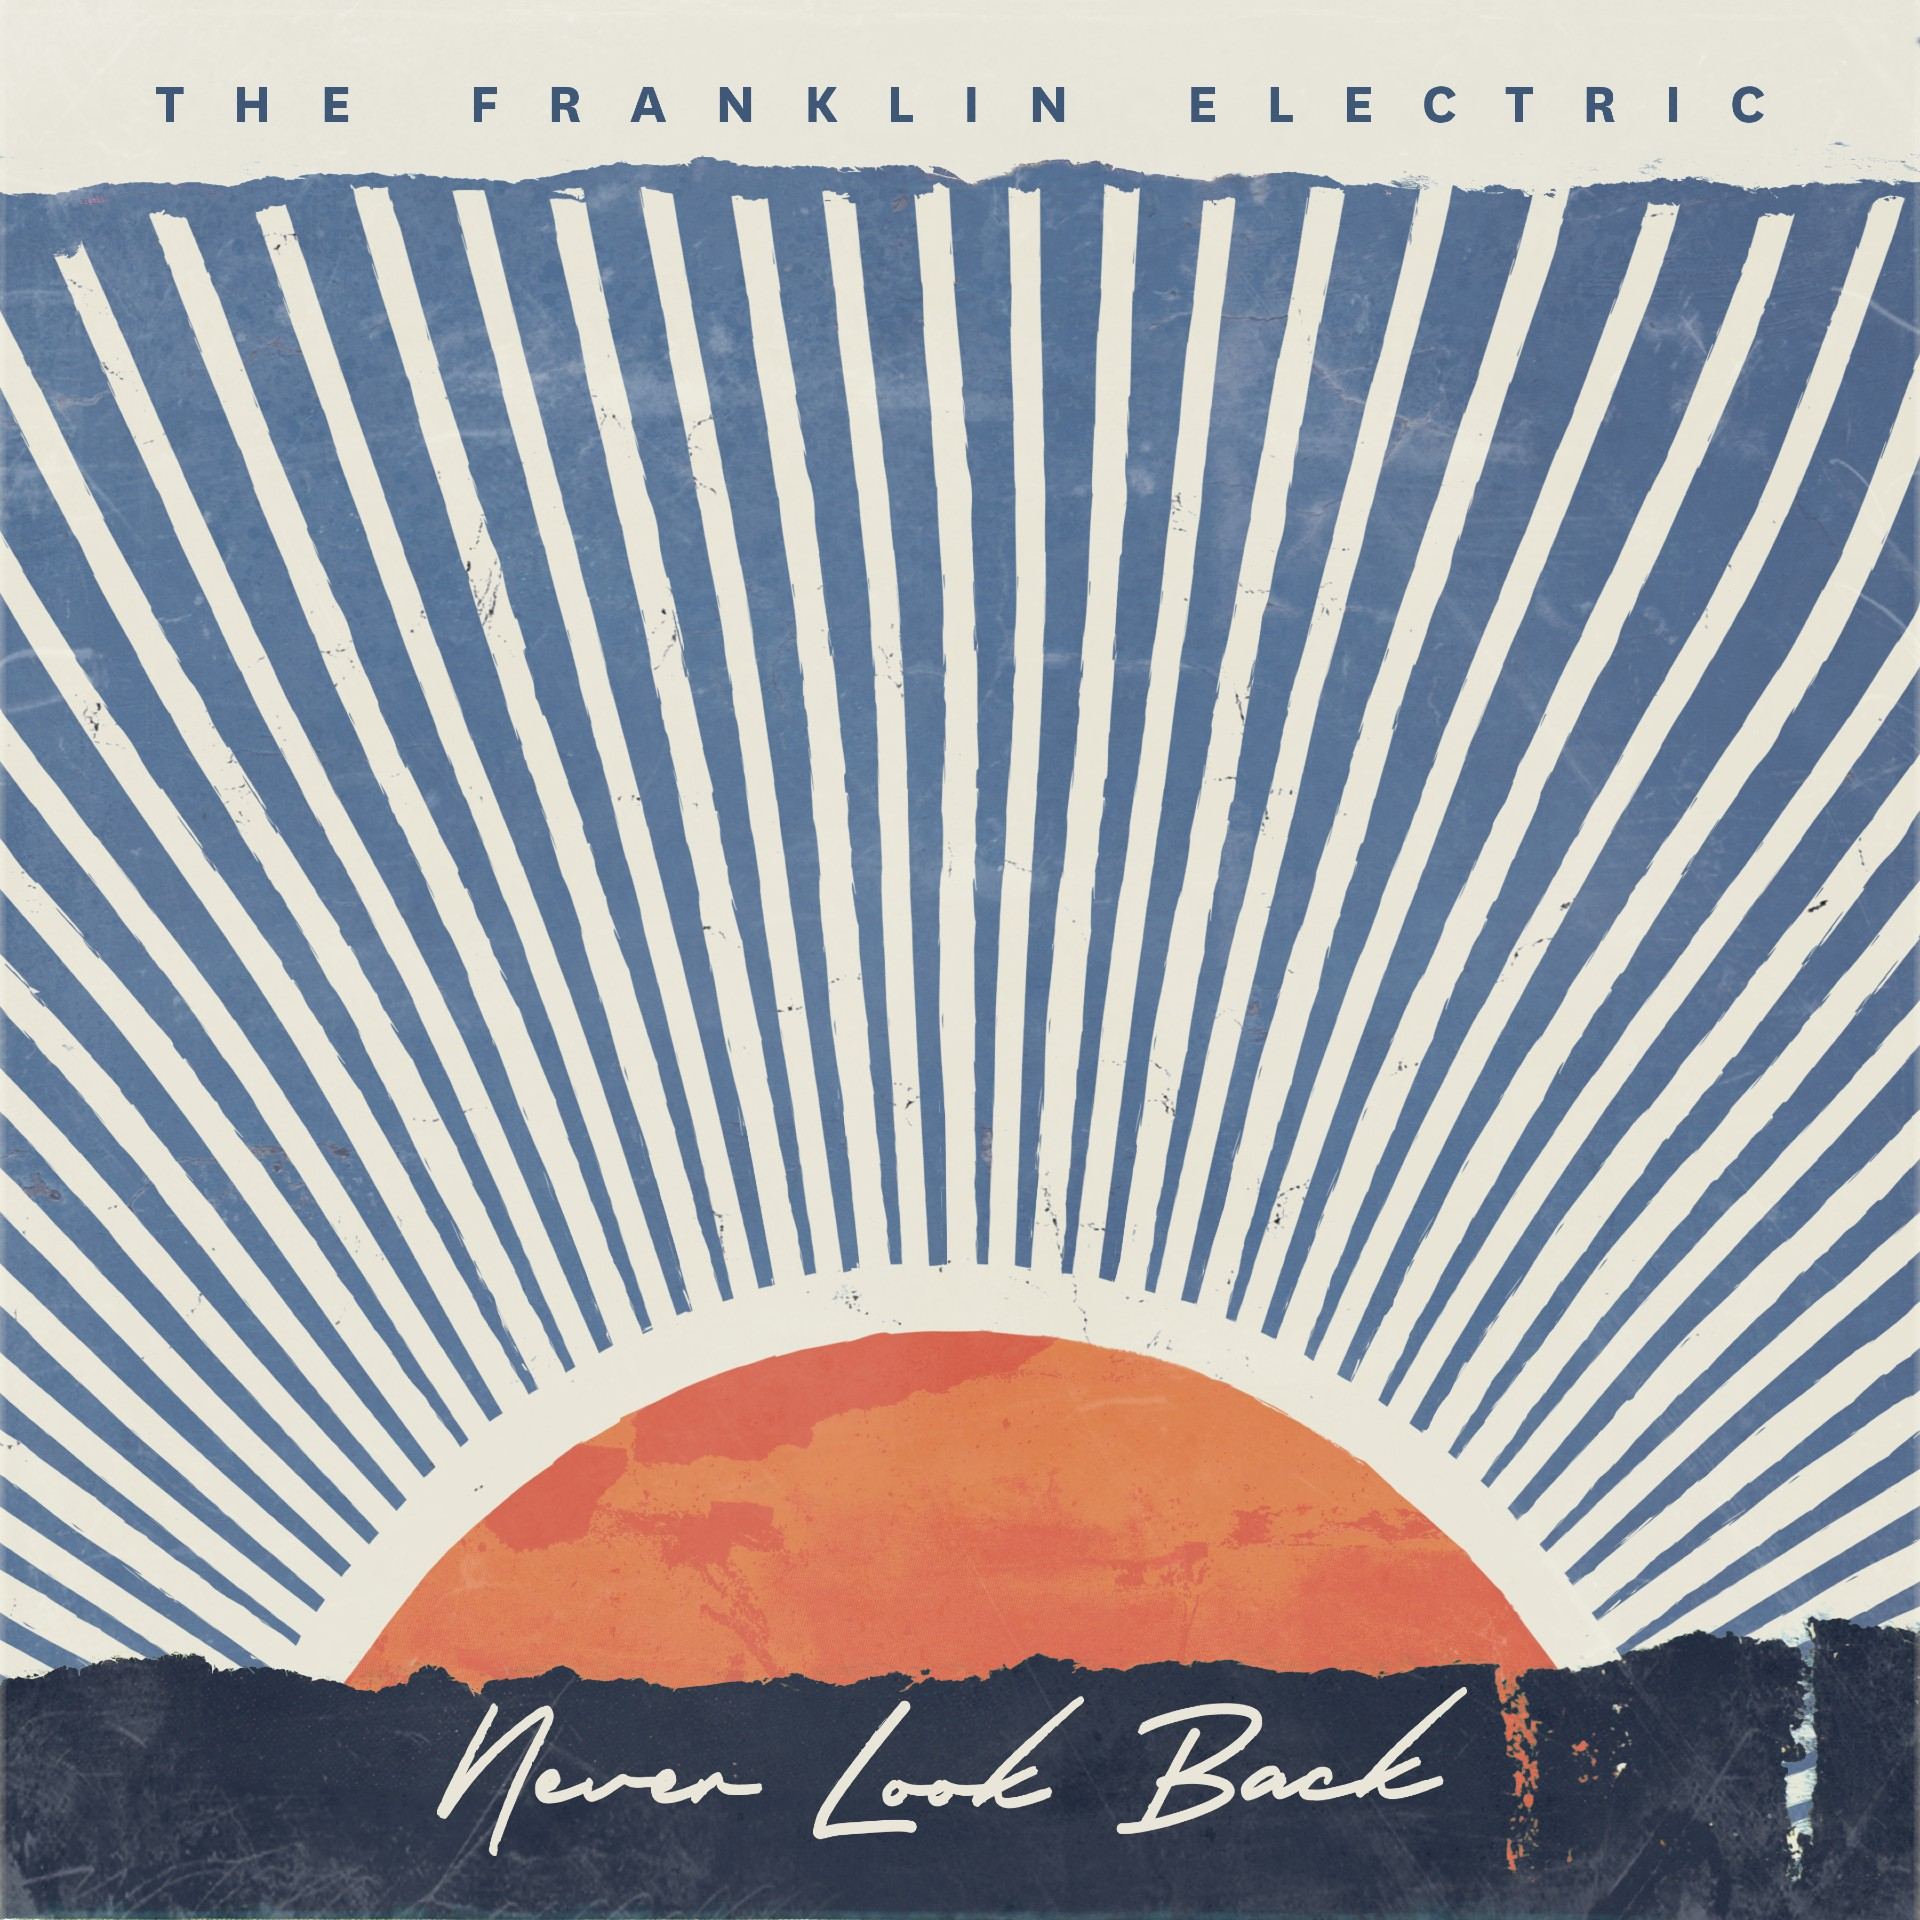 The Franklin Electric Focus on Lyricism on 'Never Look Back'